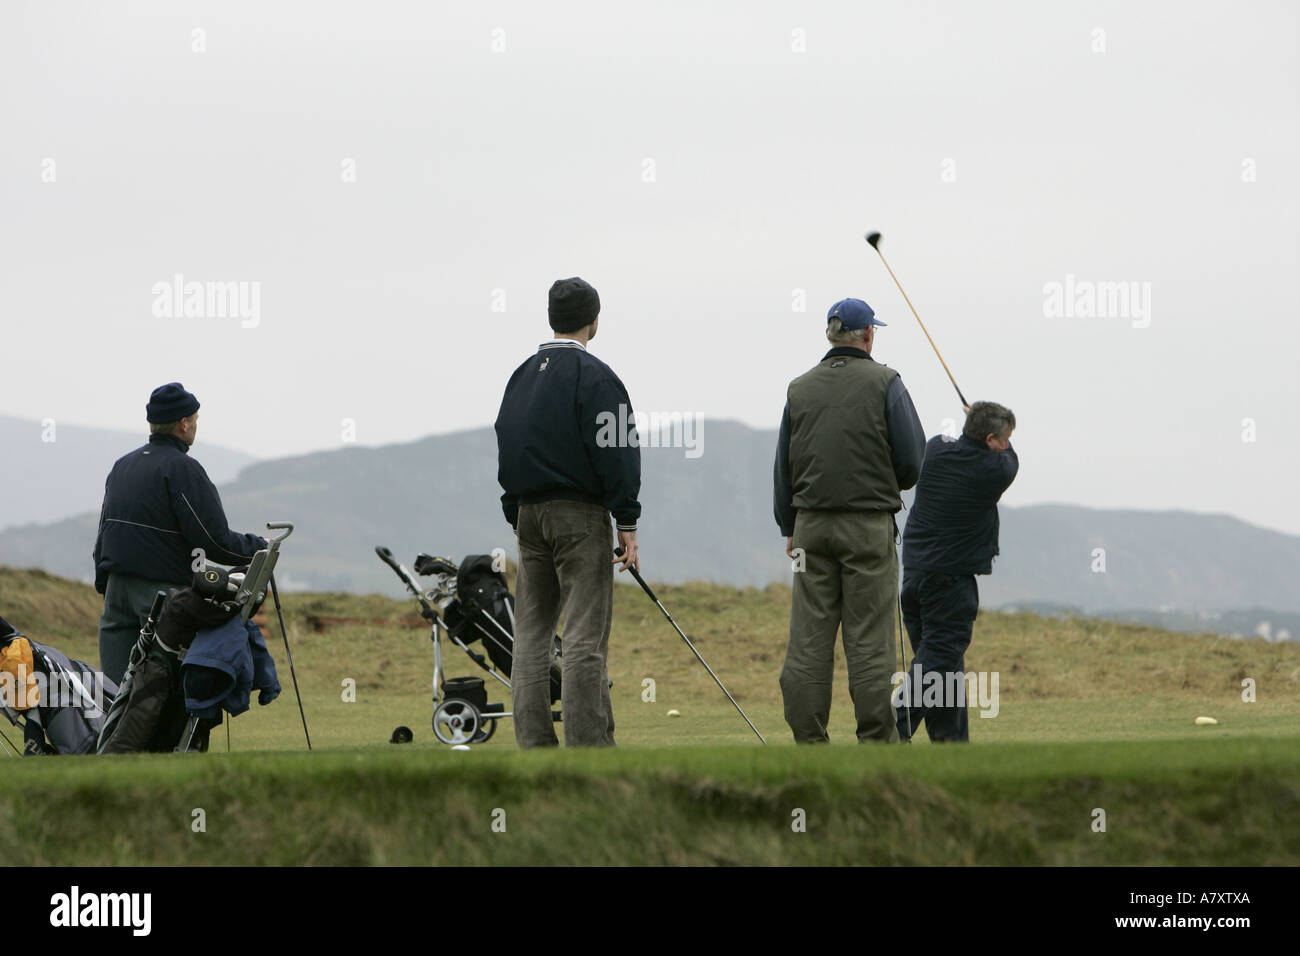 Golfers play a mid winter round on the Dunfanaghy links course near Killyhoey beach Dunfanaghy County Donegal - Stock Image